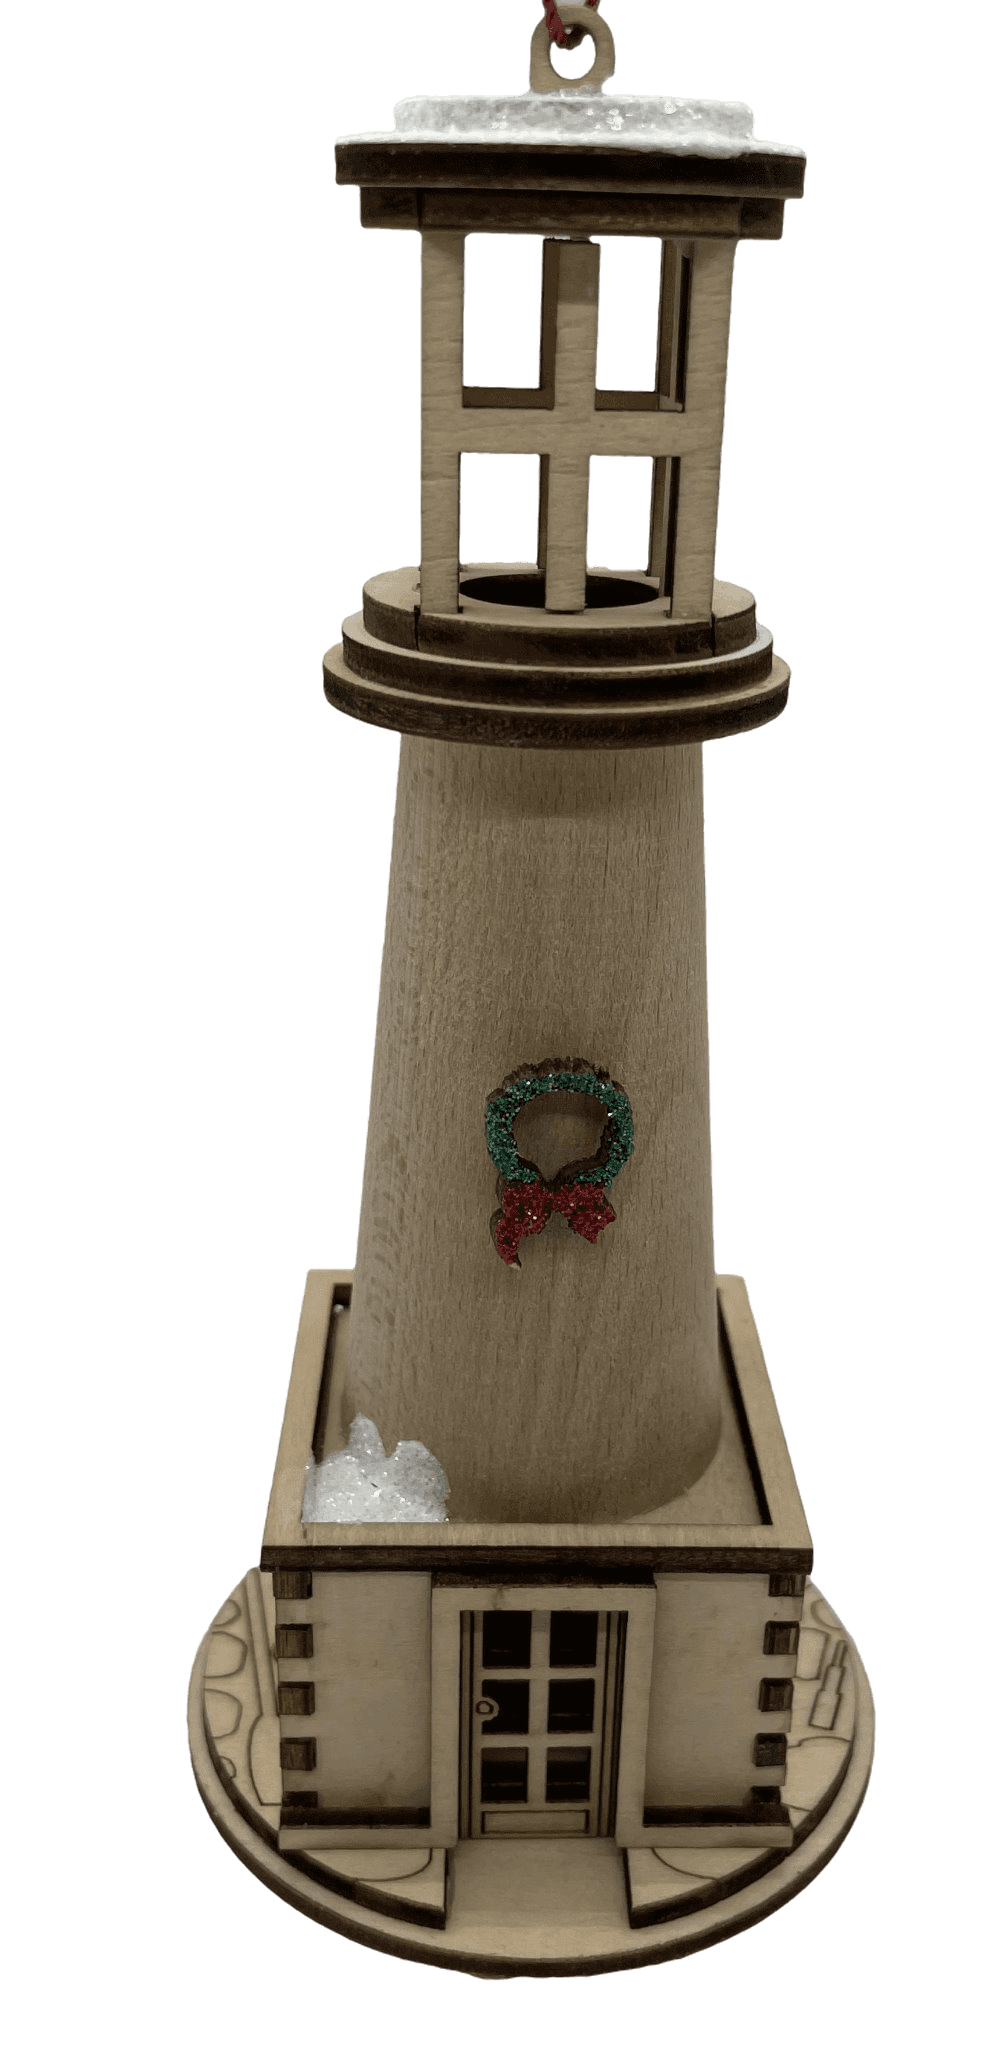 Wood Holiday Lighthouse Christmas Village - Schmidt Kersmark Kersversiering